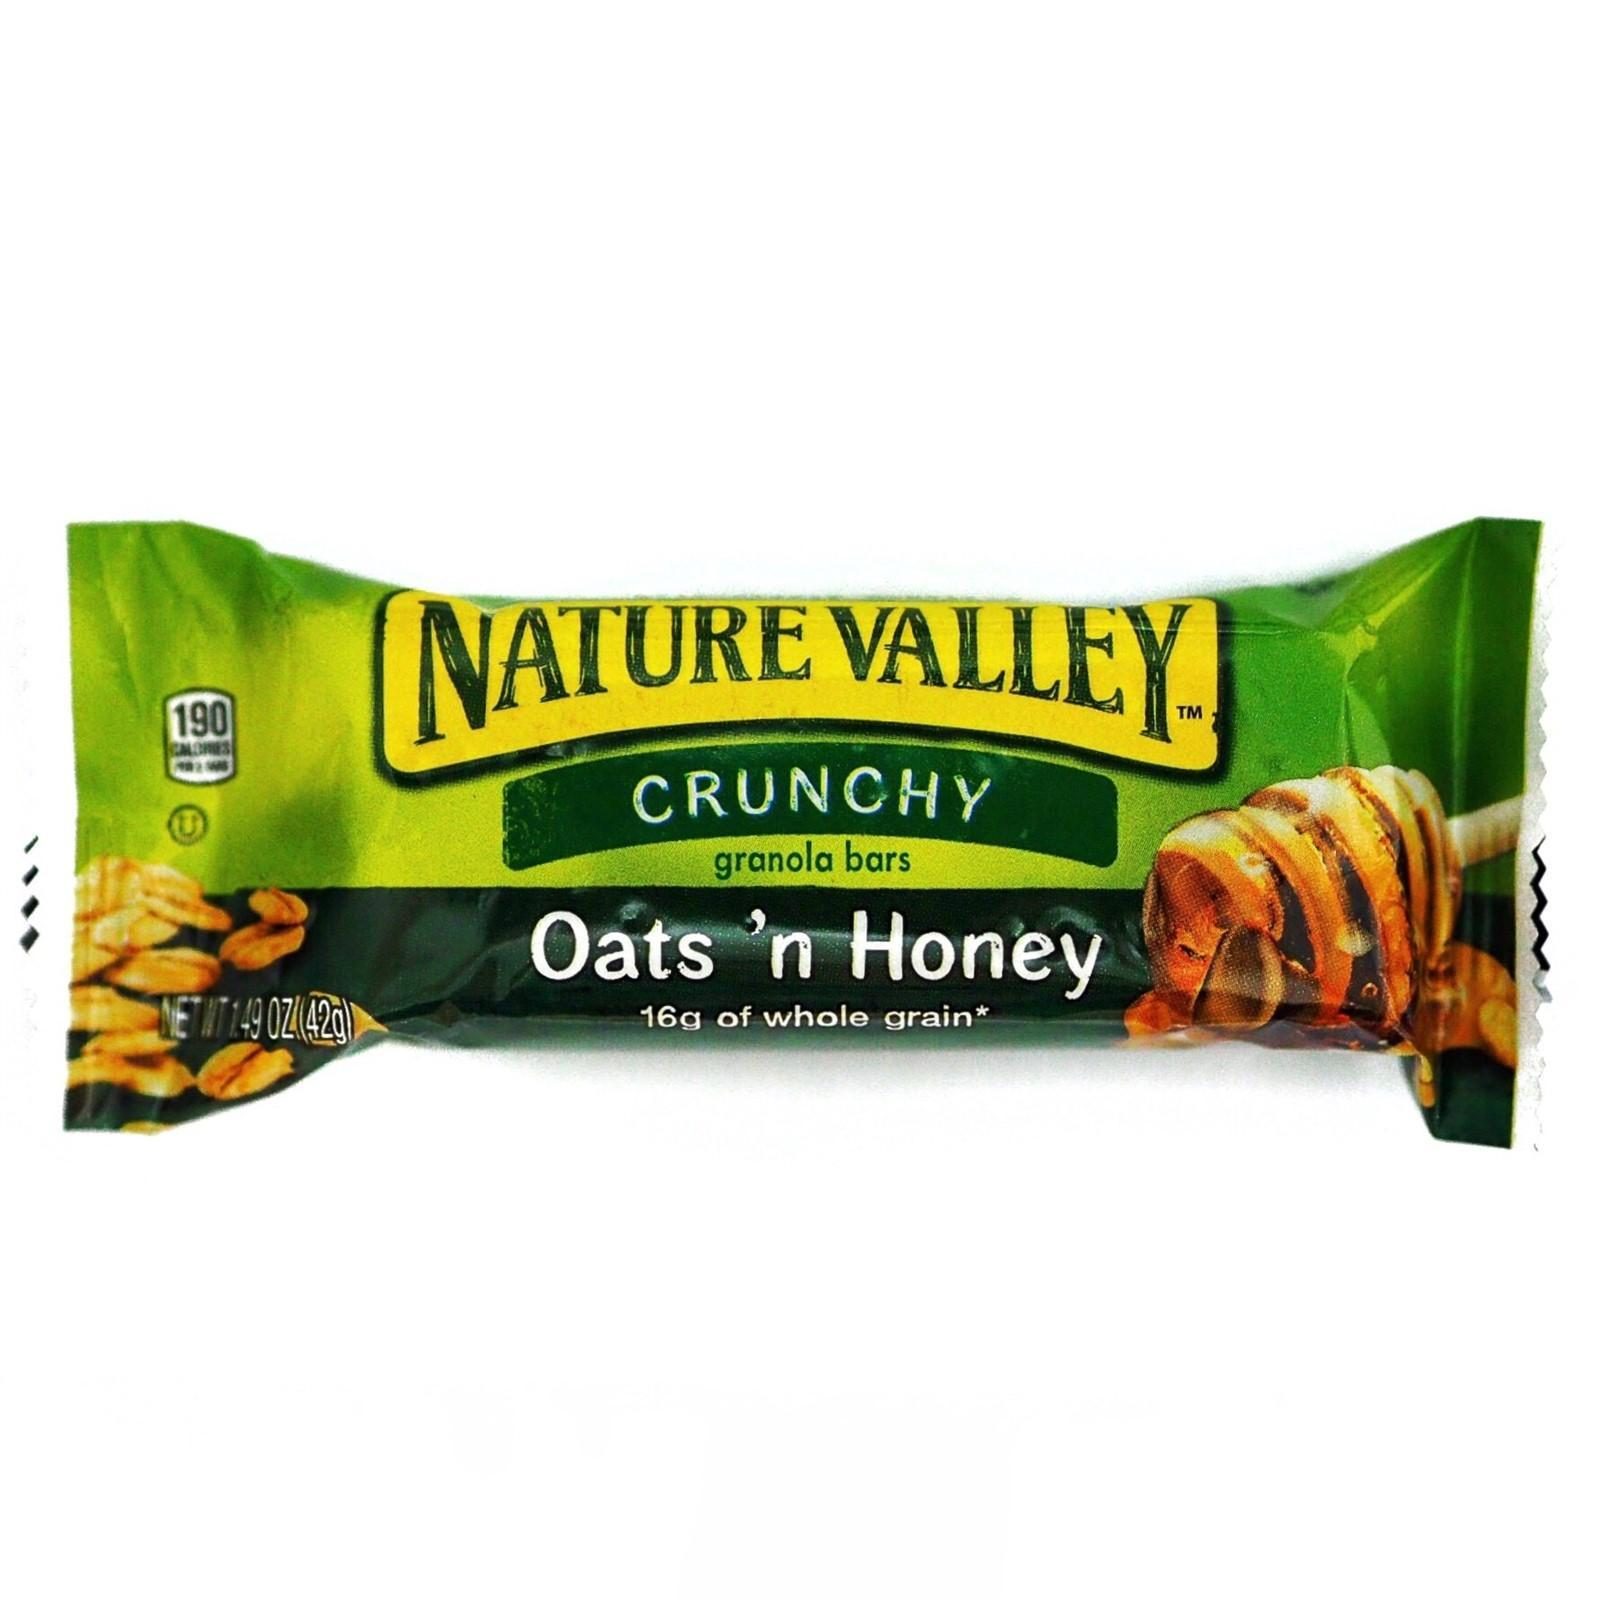 Nature Valley Oats N Honey Crunchy Granola Bars - [sample] By Redmart.